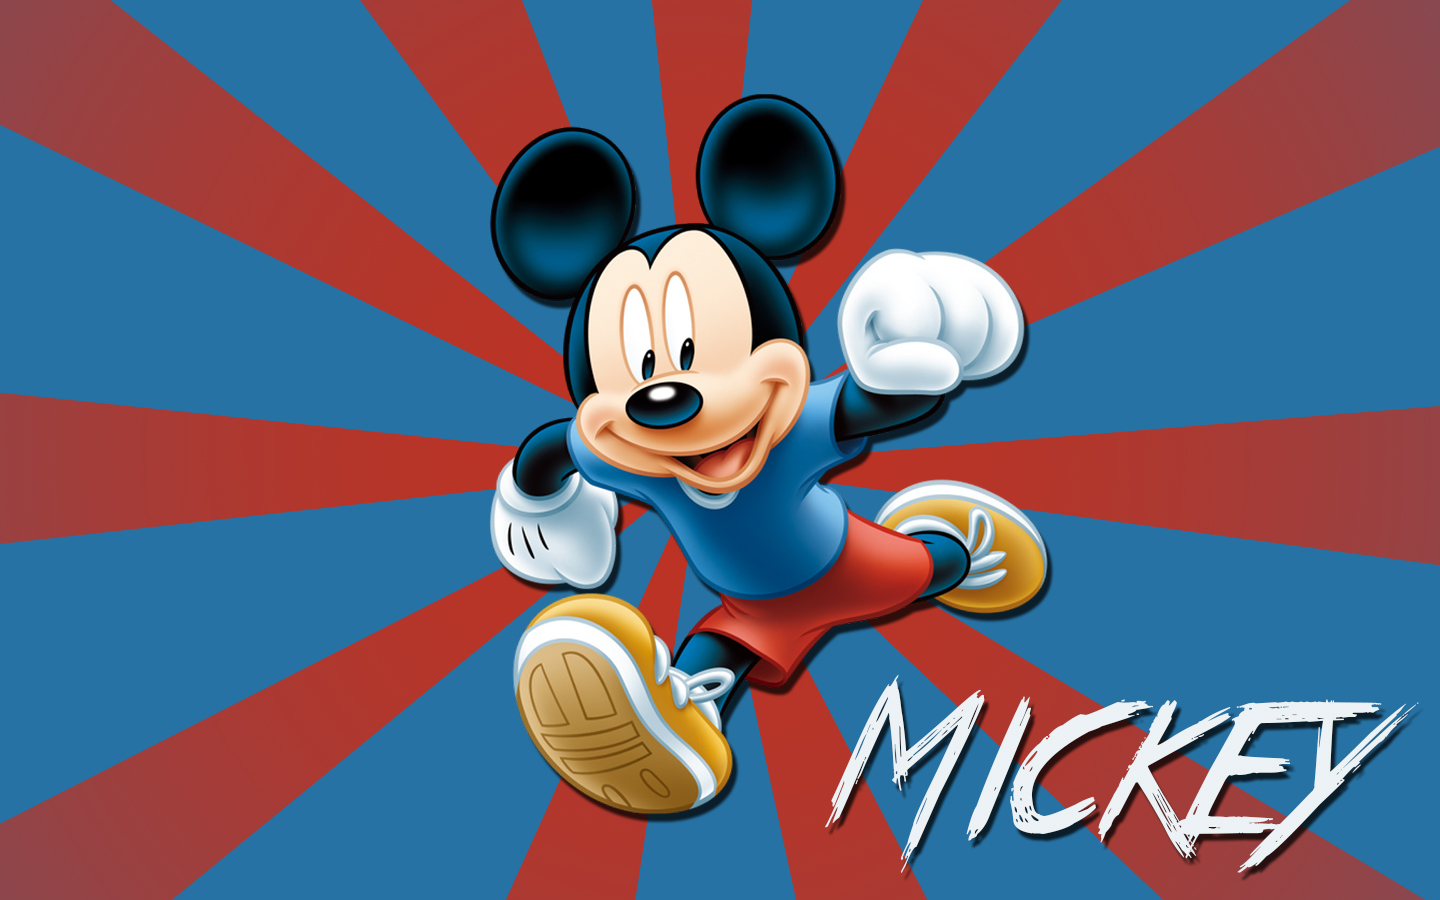 Collection Of Mickey Mouse Wallpapers On Hdwallpapers